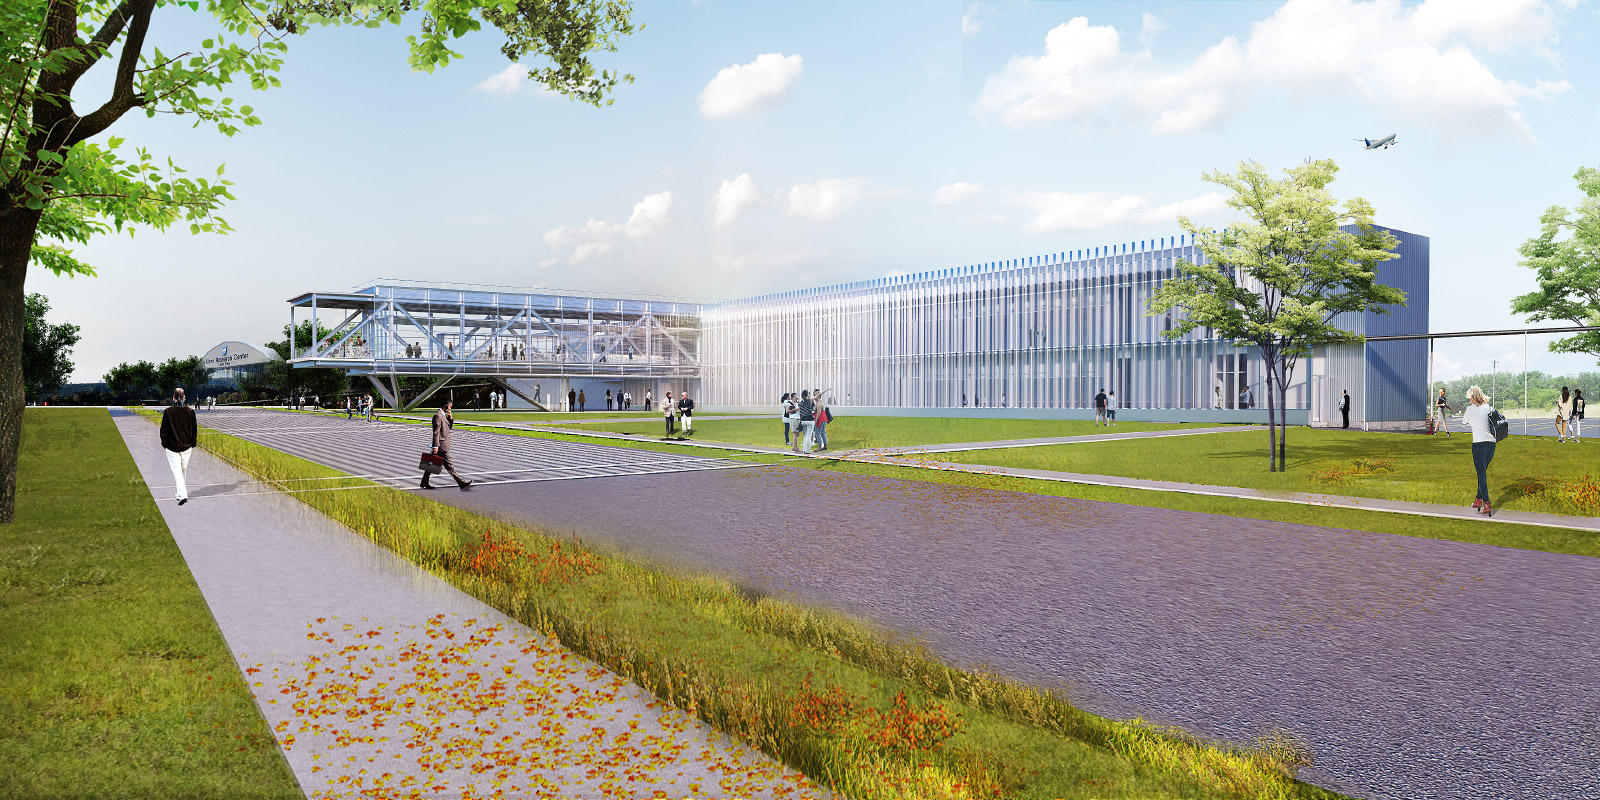 Rendering of the Research Support Building, a forthcoming addition to the John H. Glenn Research Center in Cleveland, Ohio, designed by TEN Arquitectos